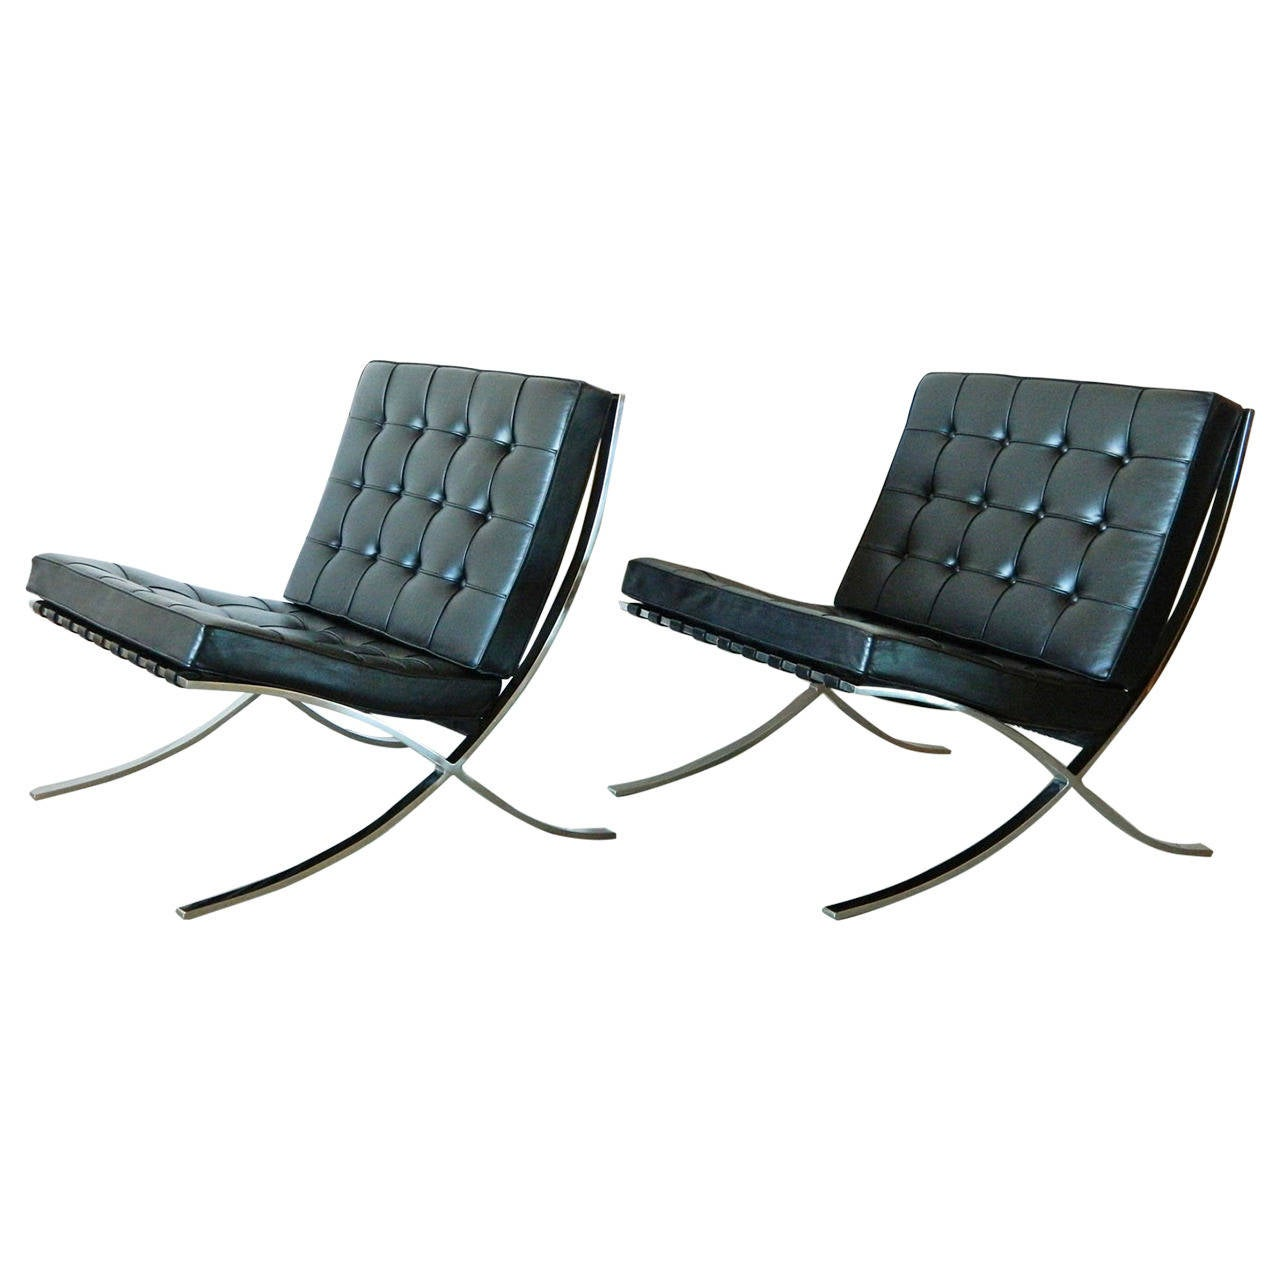 Pair Of Vintage Mies Van Der Rohe Barcelona Chairs For Knoll 1